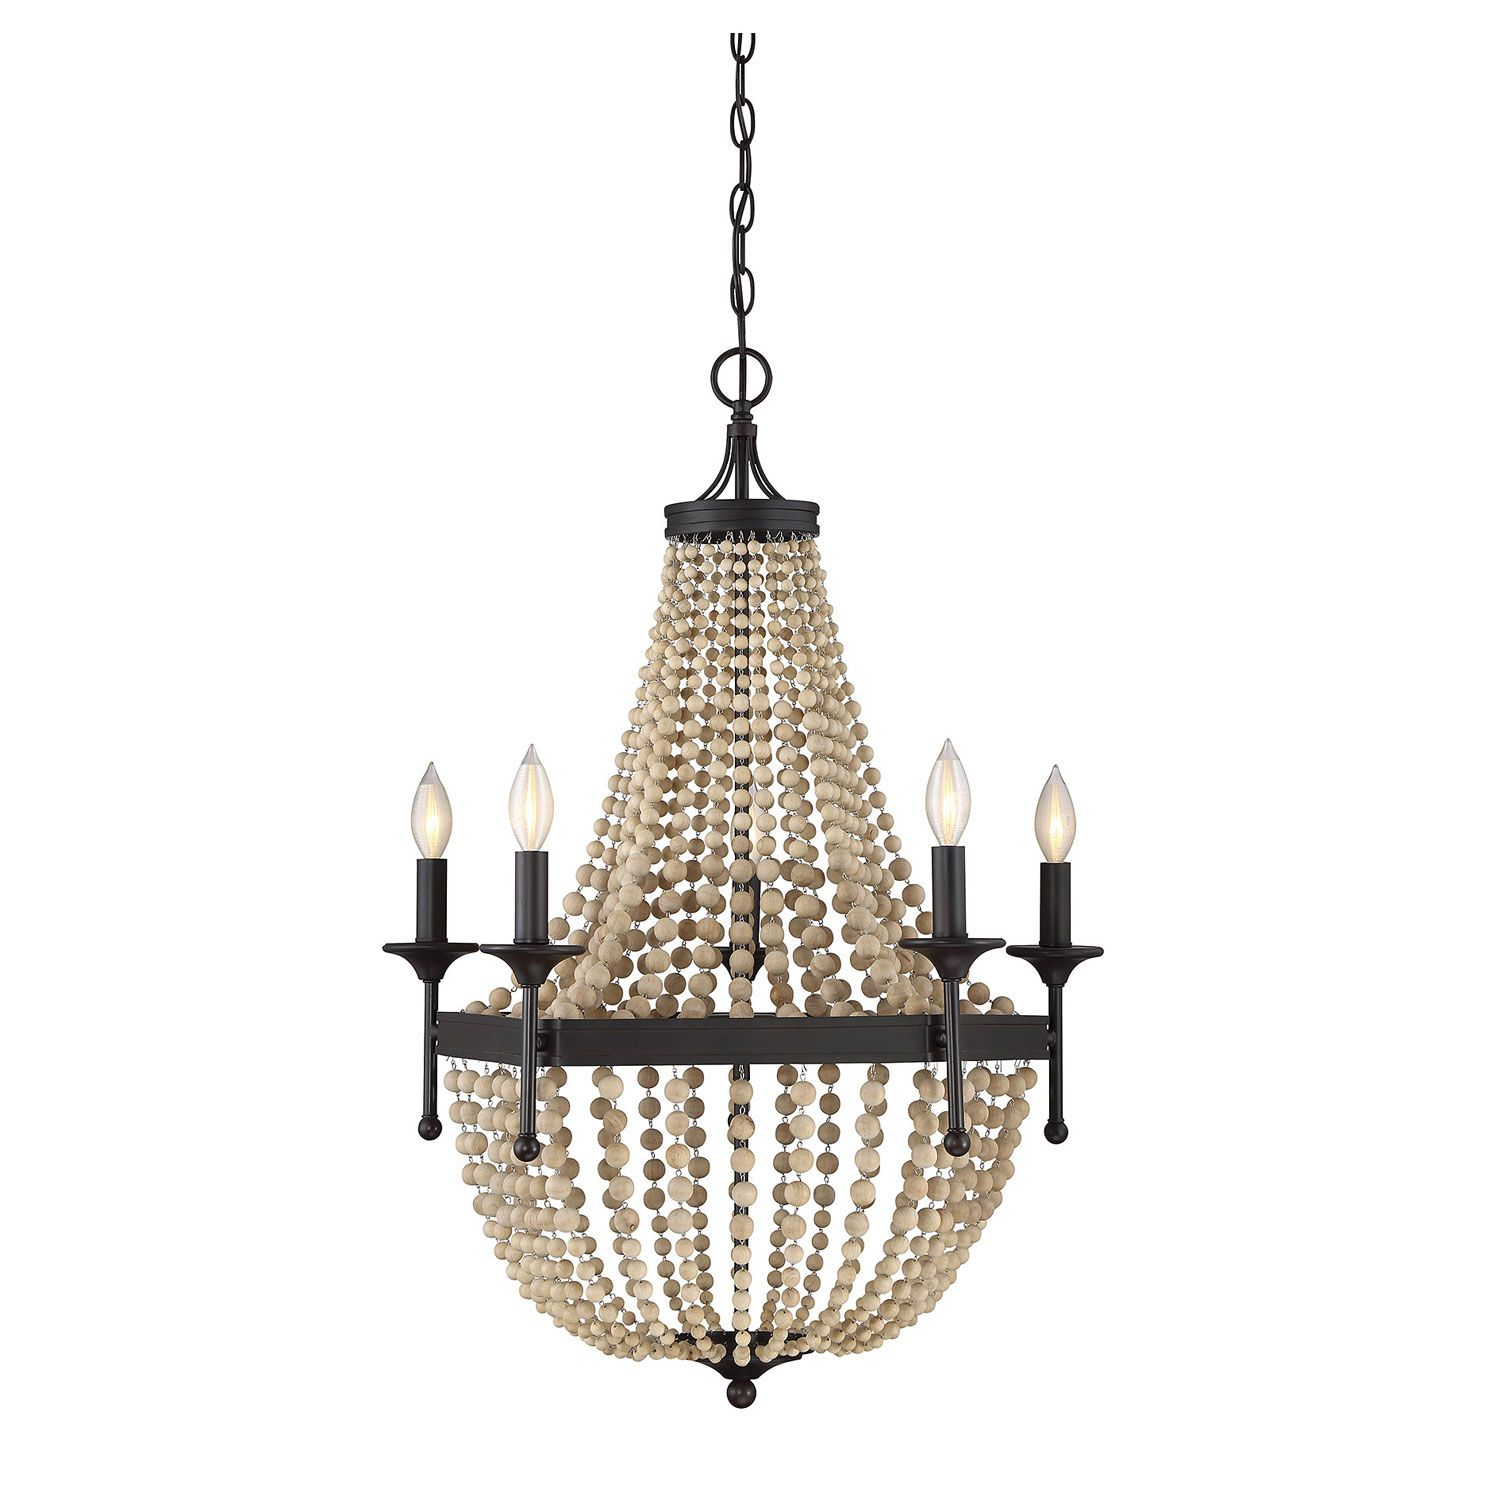 251 First Hayden Oil Rubbed Bronze Five Light Chandelier